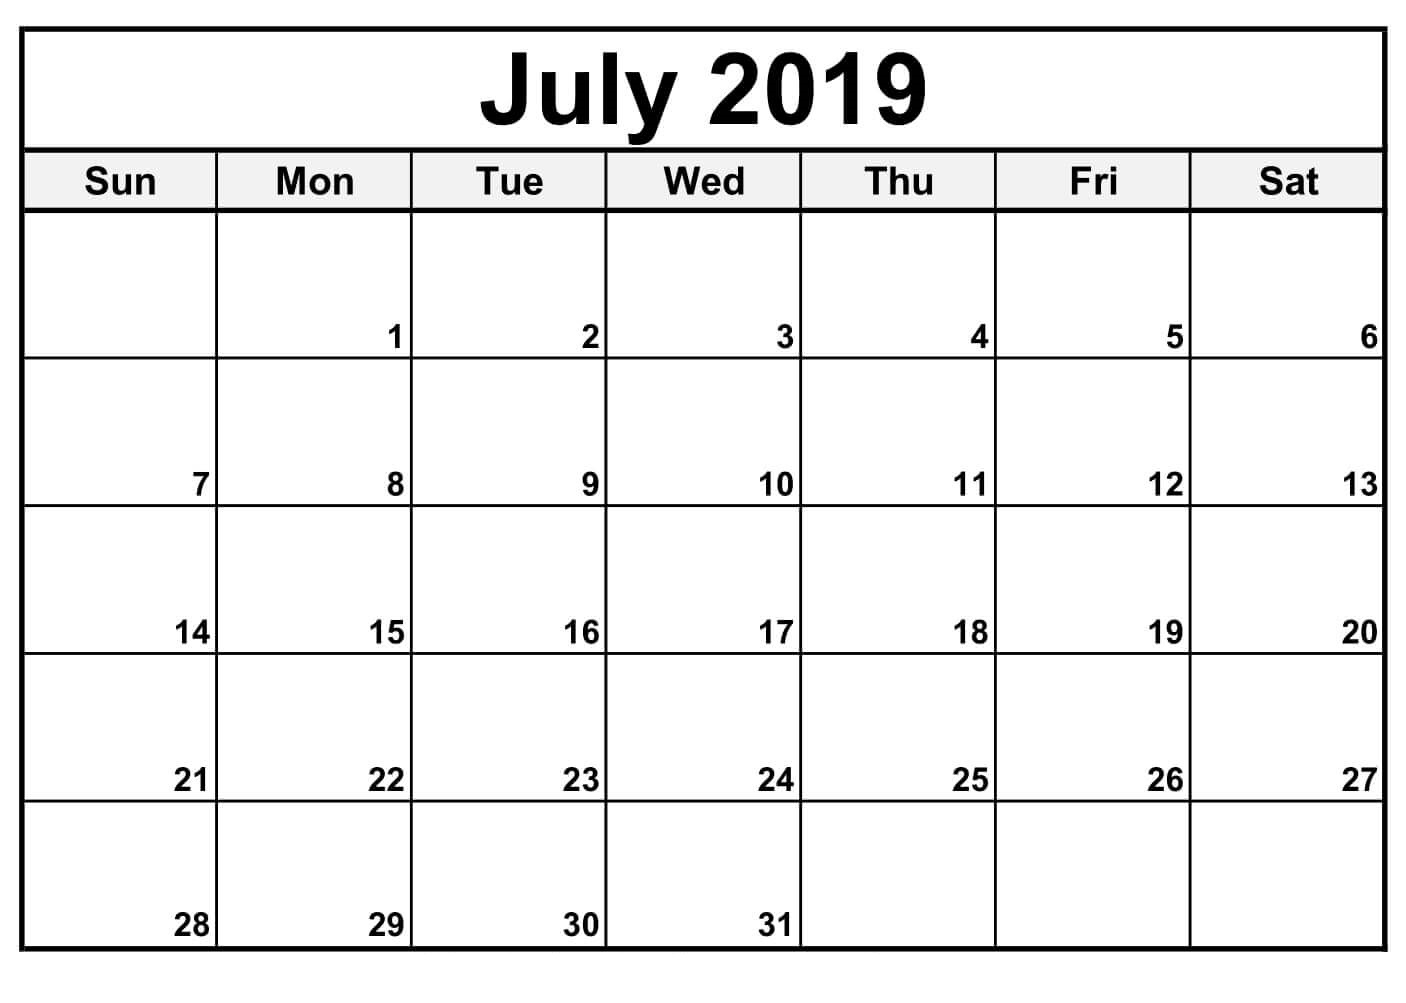 Fillable Blank July 2019 Calendar Printable Template - Free